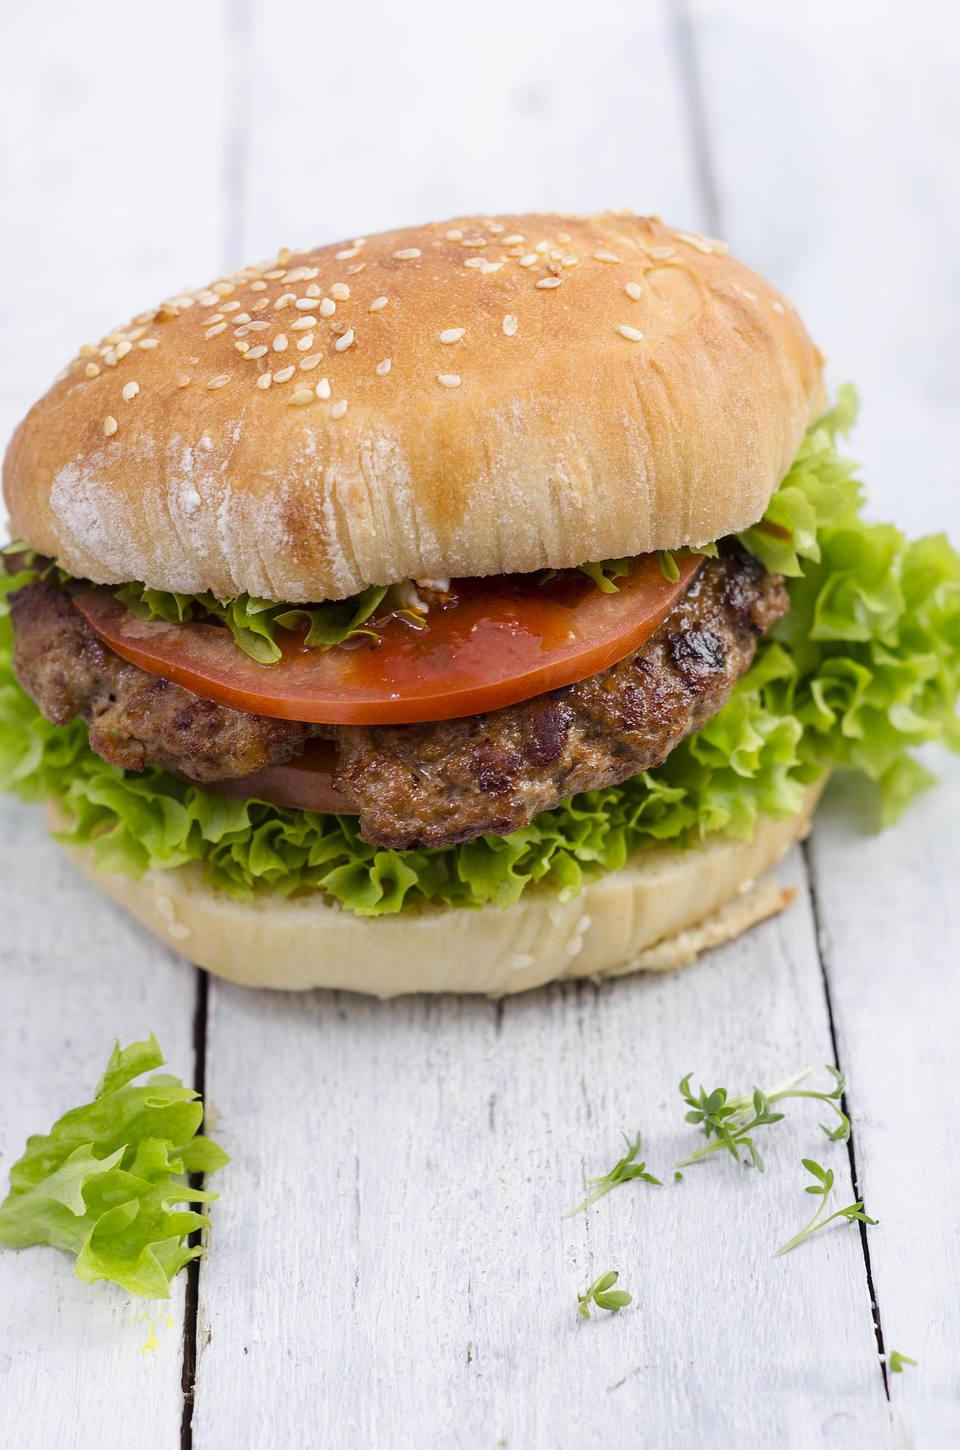 Grilled Dill and Dijon Burgers